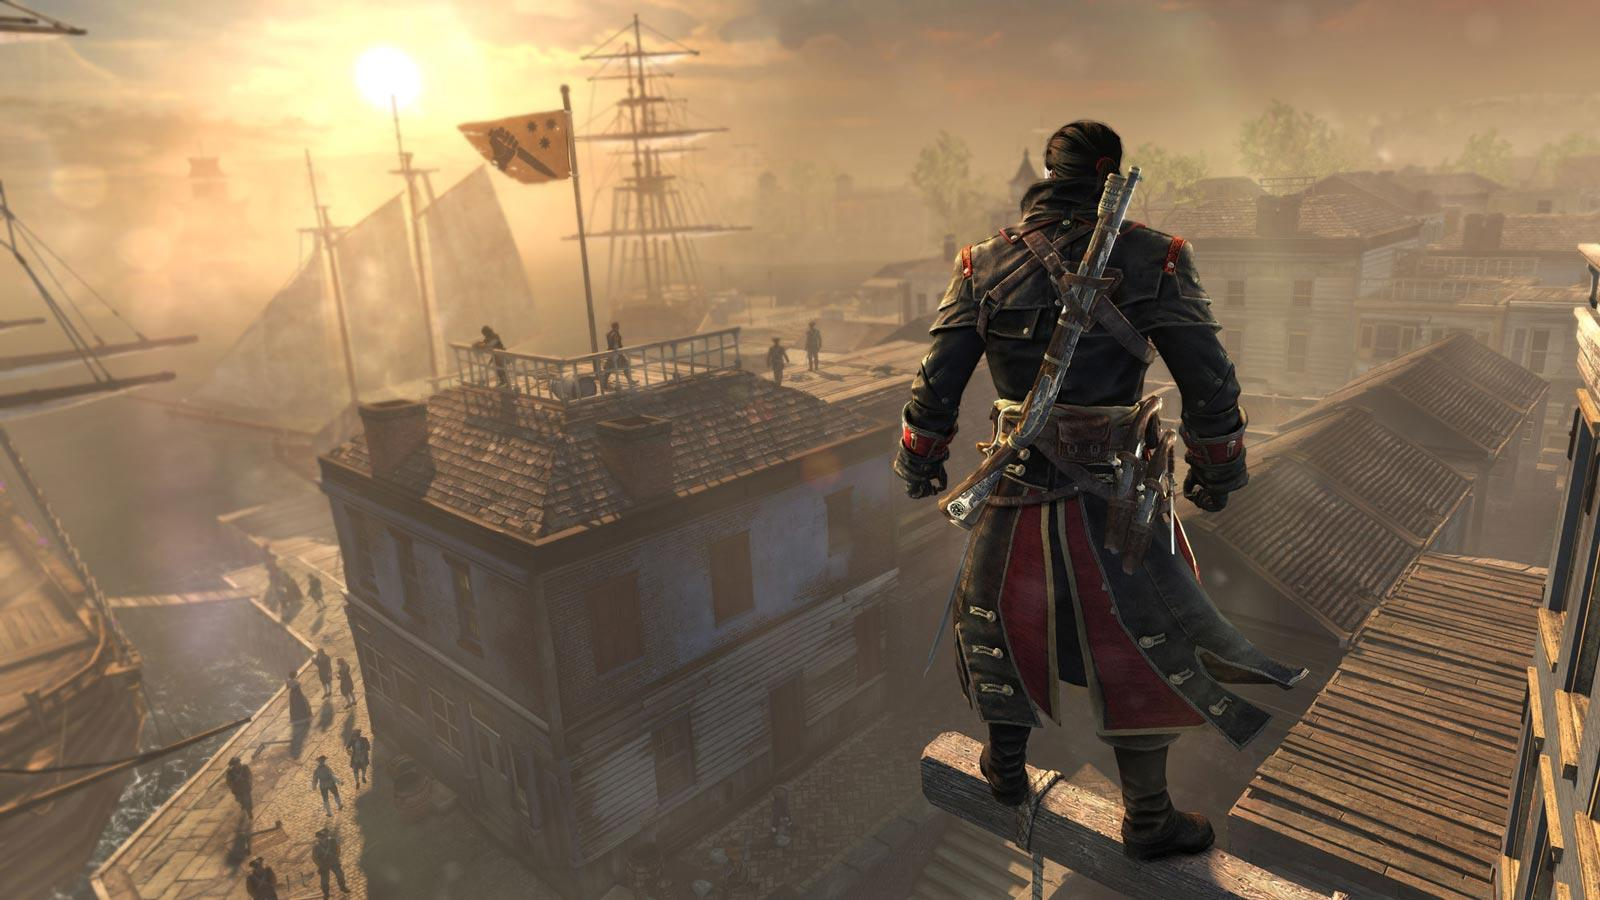 Un aperçu du jeu Assassin's Creed Rogue.